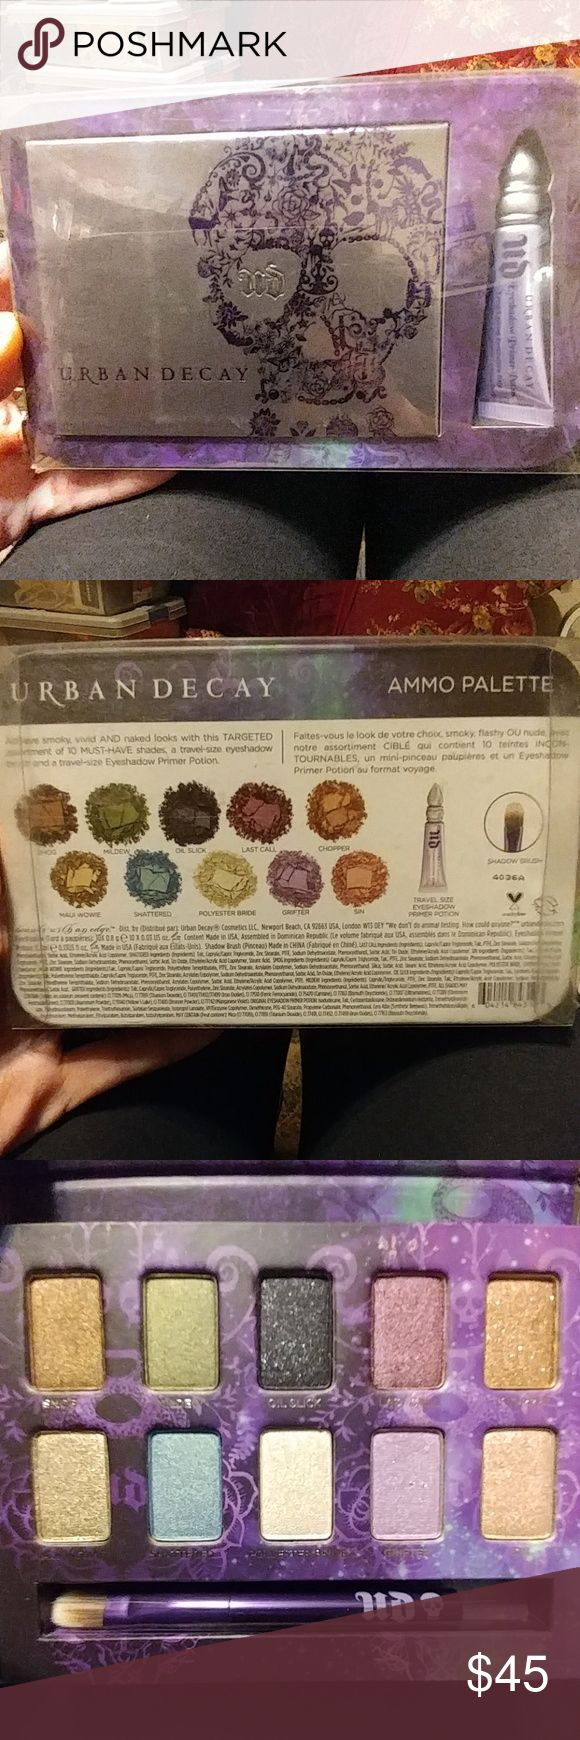 NIB Urban Decay Ammo Palette w/ Primer Potion Original! Collectors!! New in Original Retail Packaging! Untouched! -10 Shadows & Shadow Brush. Palette w/Mirror & Original Primer Potion. I have collected UD for years.. Finally letting go of my collection! See my listings for other Urban Decay Original collectable palettes. Urban Decay Makeup Eyeshadow